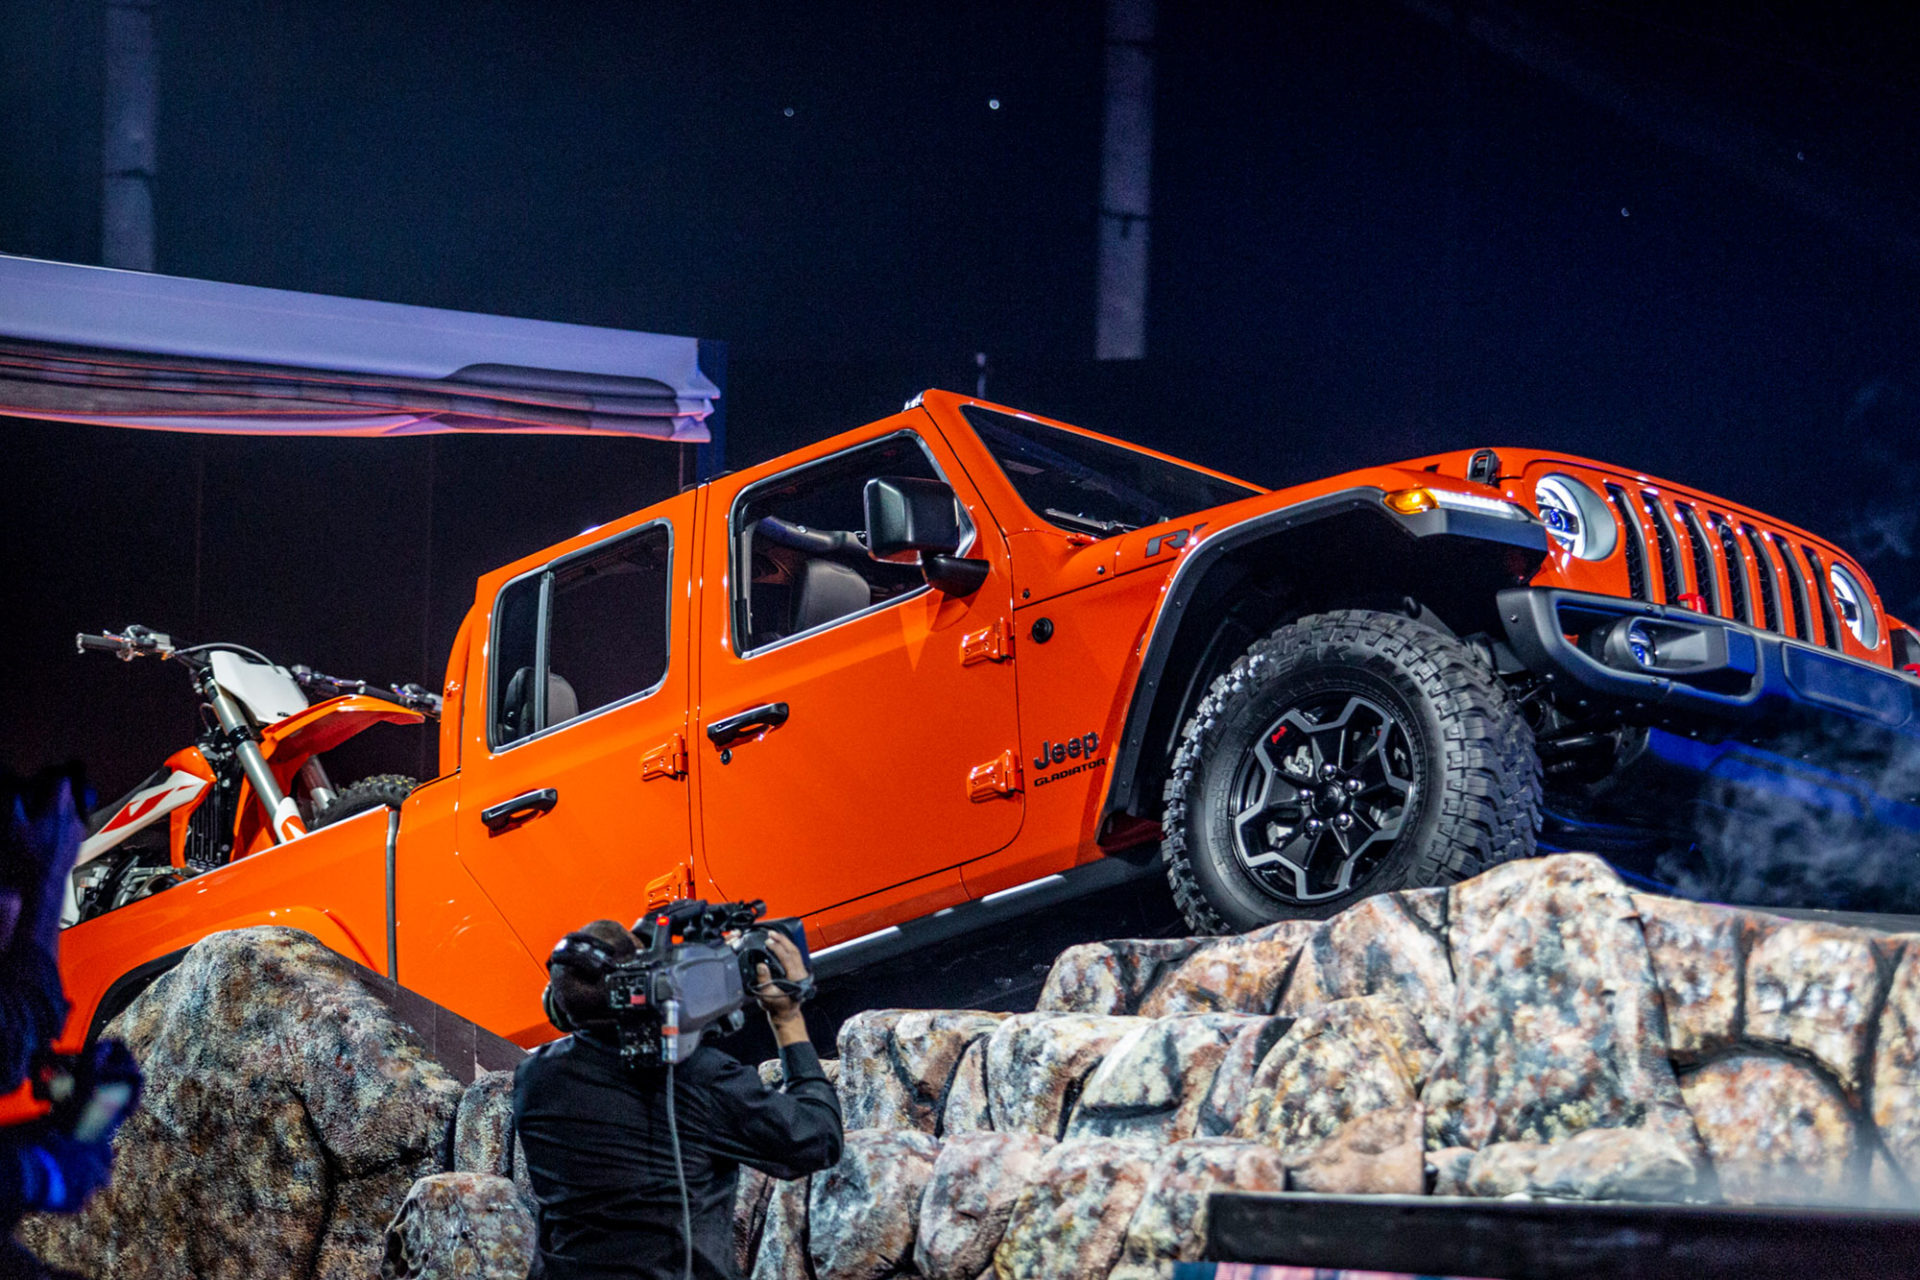 2018-Press-Conference---Jeep-015